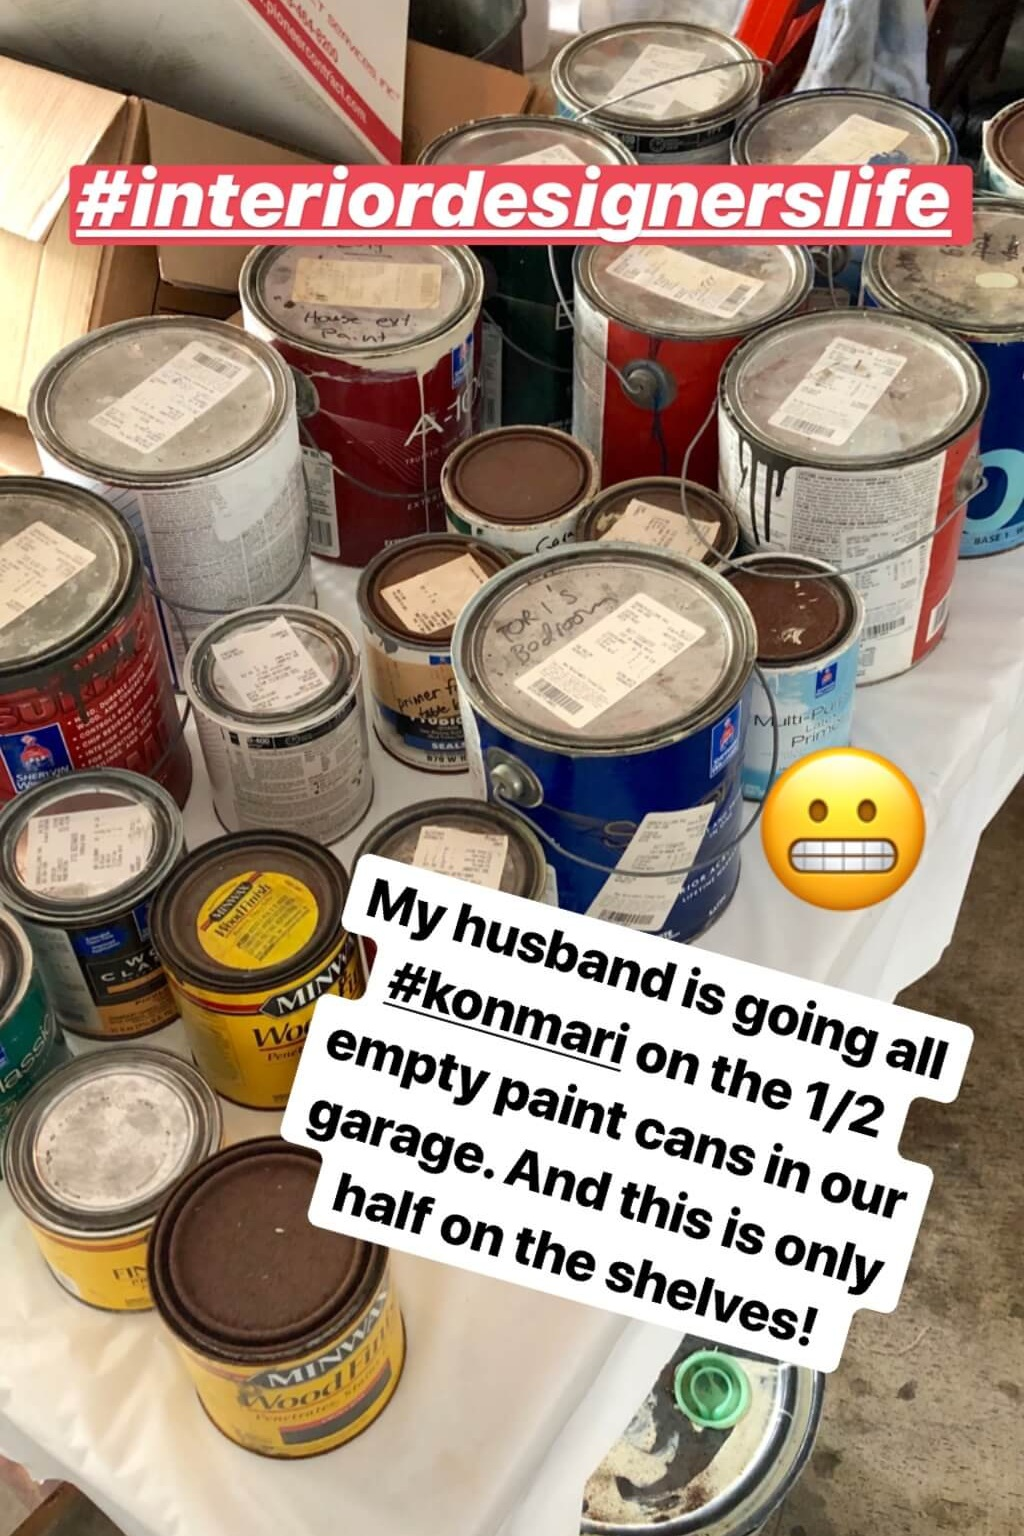 Don't worry, we recycled. This is from almost 20 years of living in this house and well, I like to experiment around here sometimes. :-/